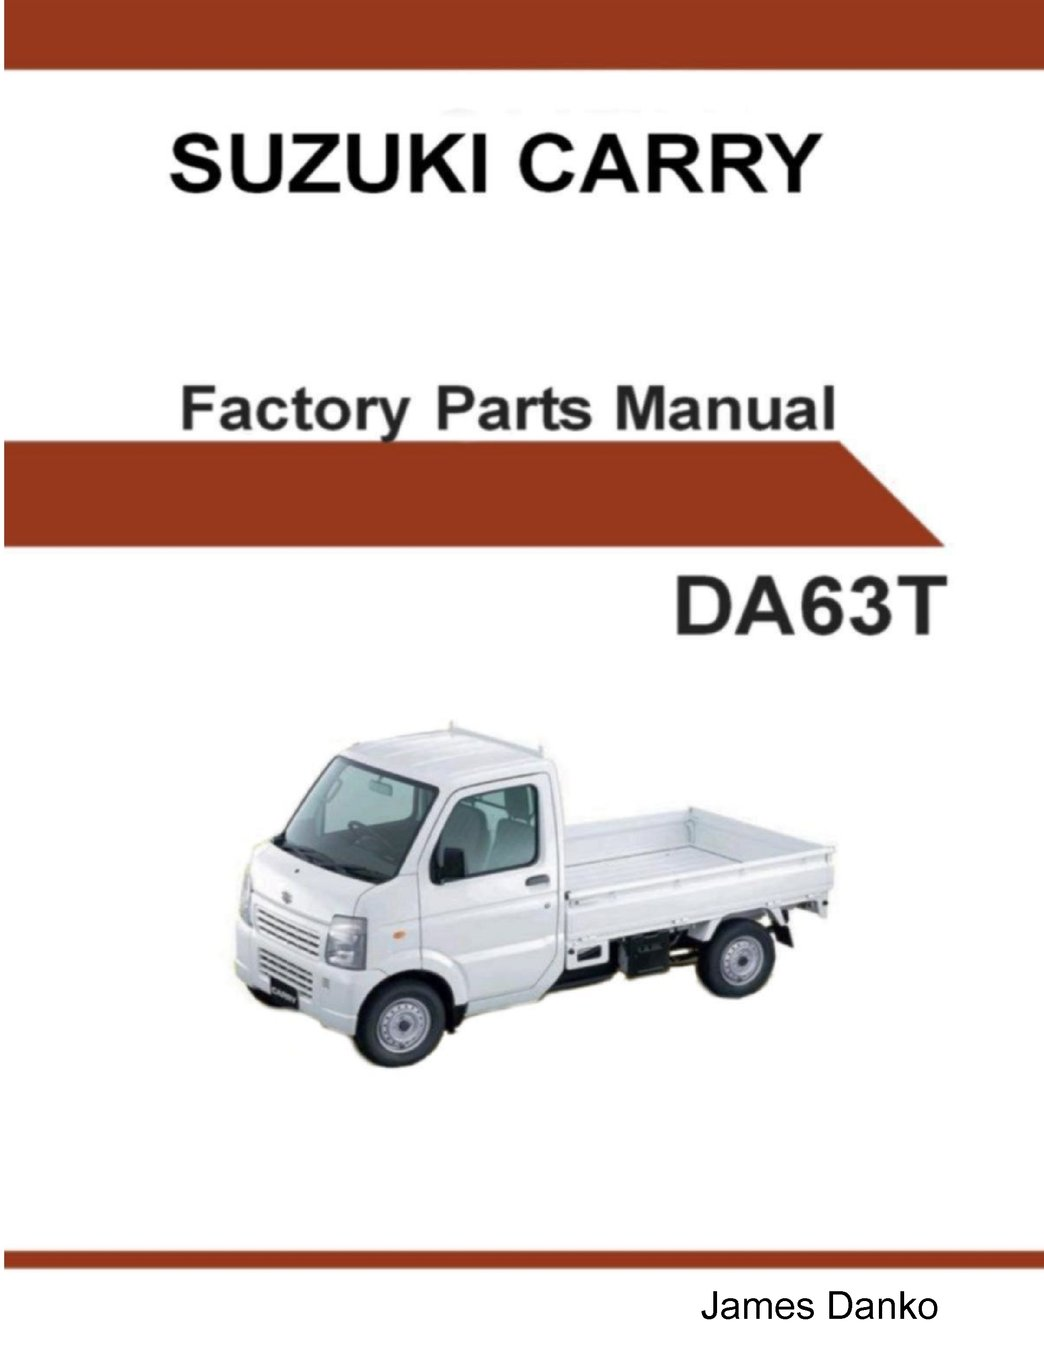 Suzuki Carry Da63T English Factory Parts Manual: James Danko:  9781312679030: Amazon.com: Books